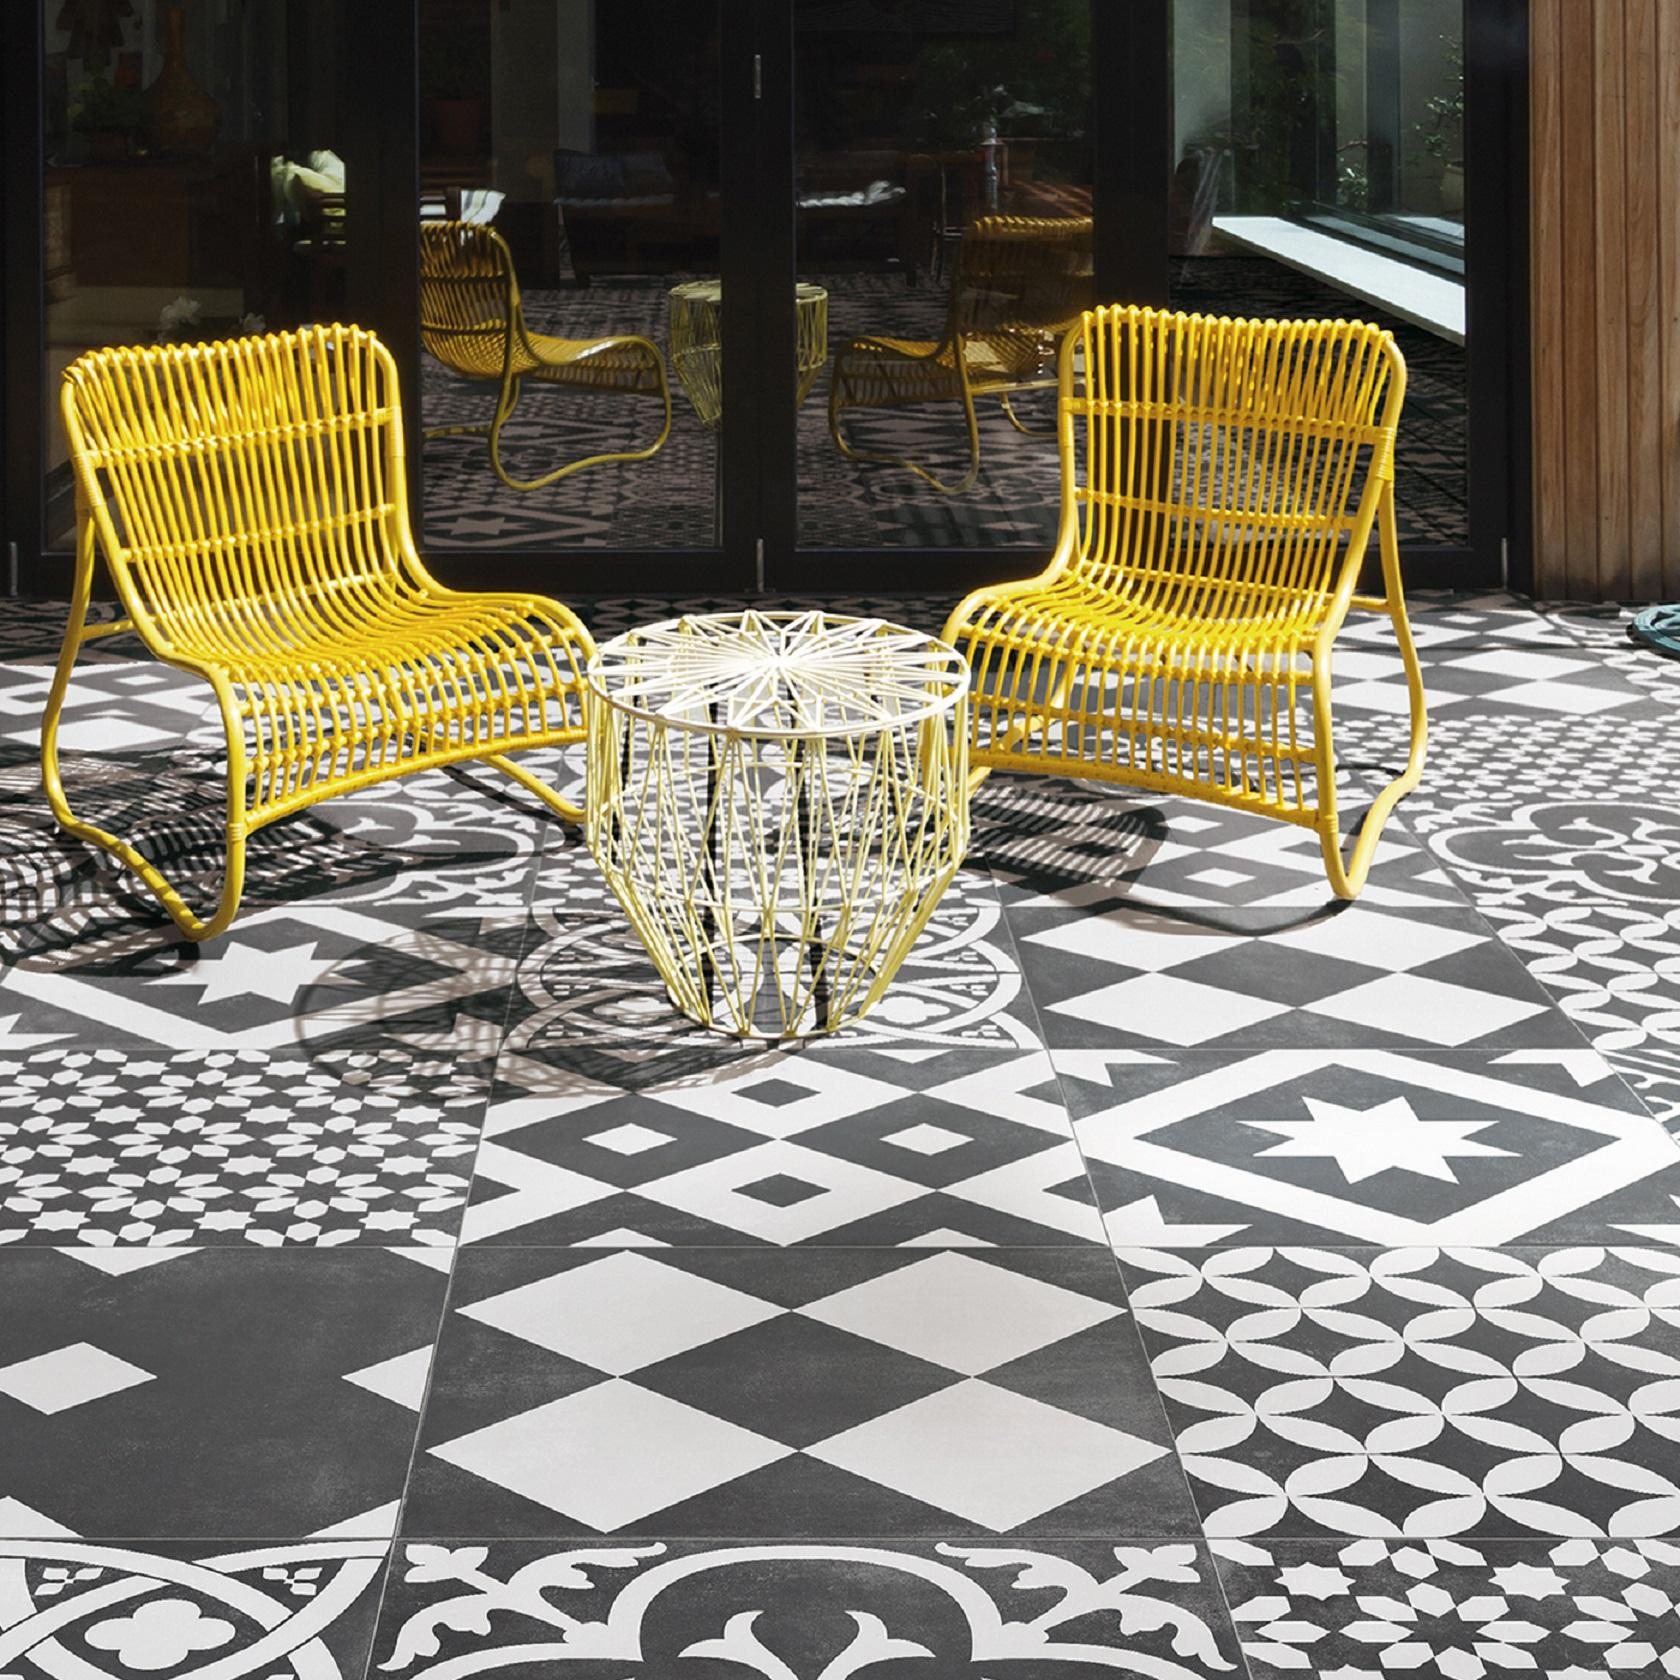 Black and white patterned tiles for outdoors